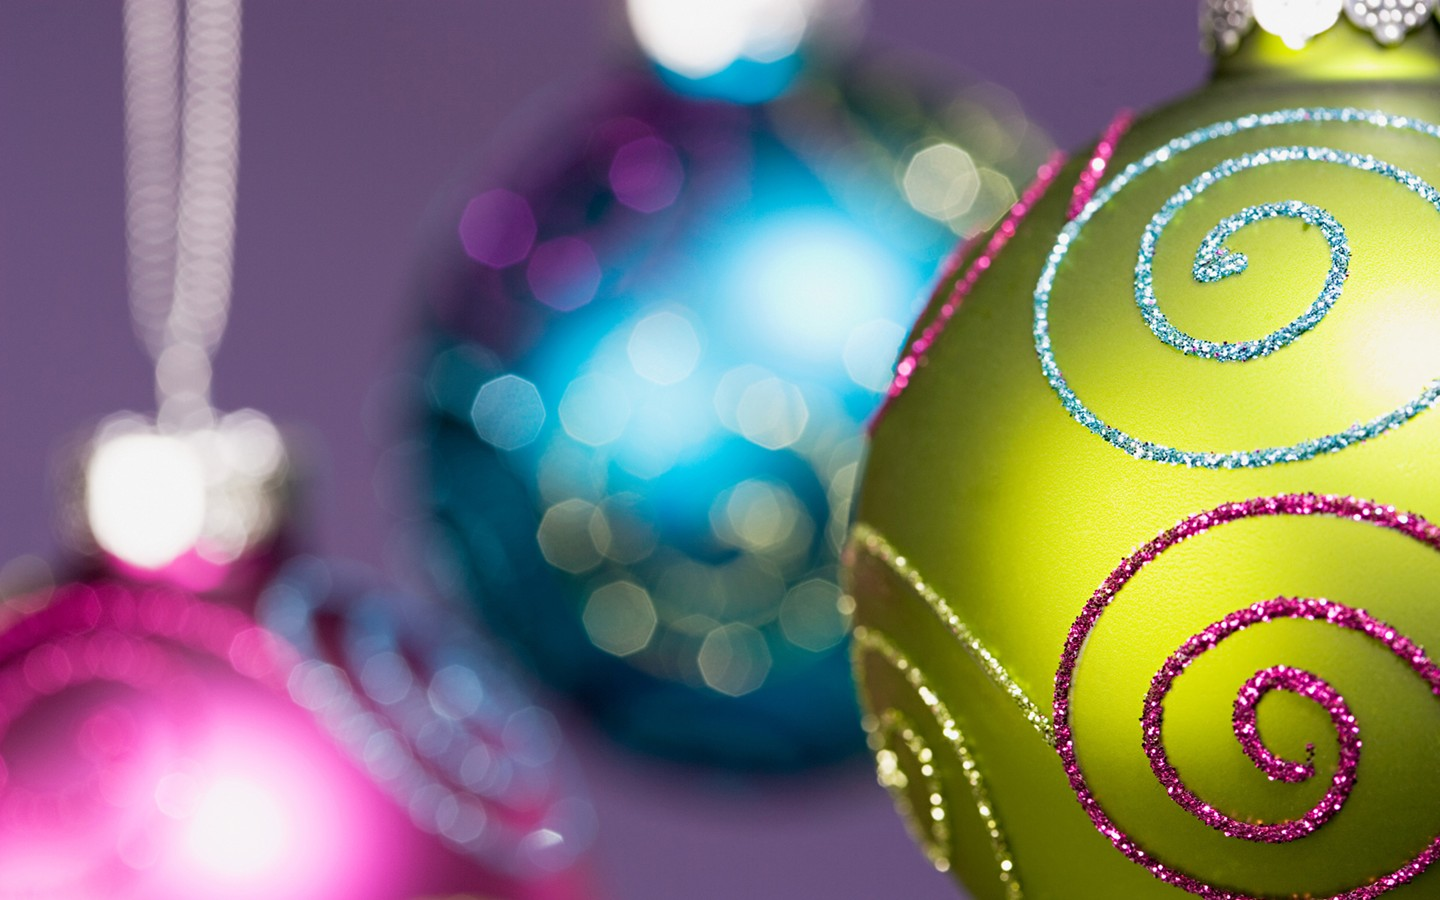 Colorful Christmas ornaments wallpaper 31158